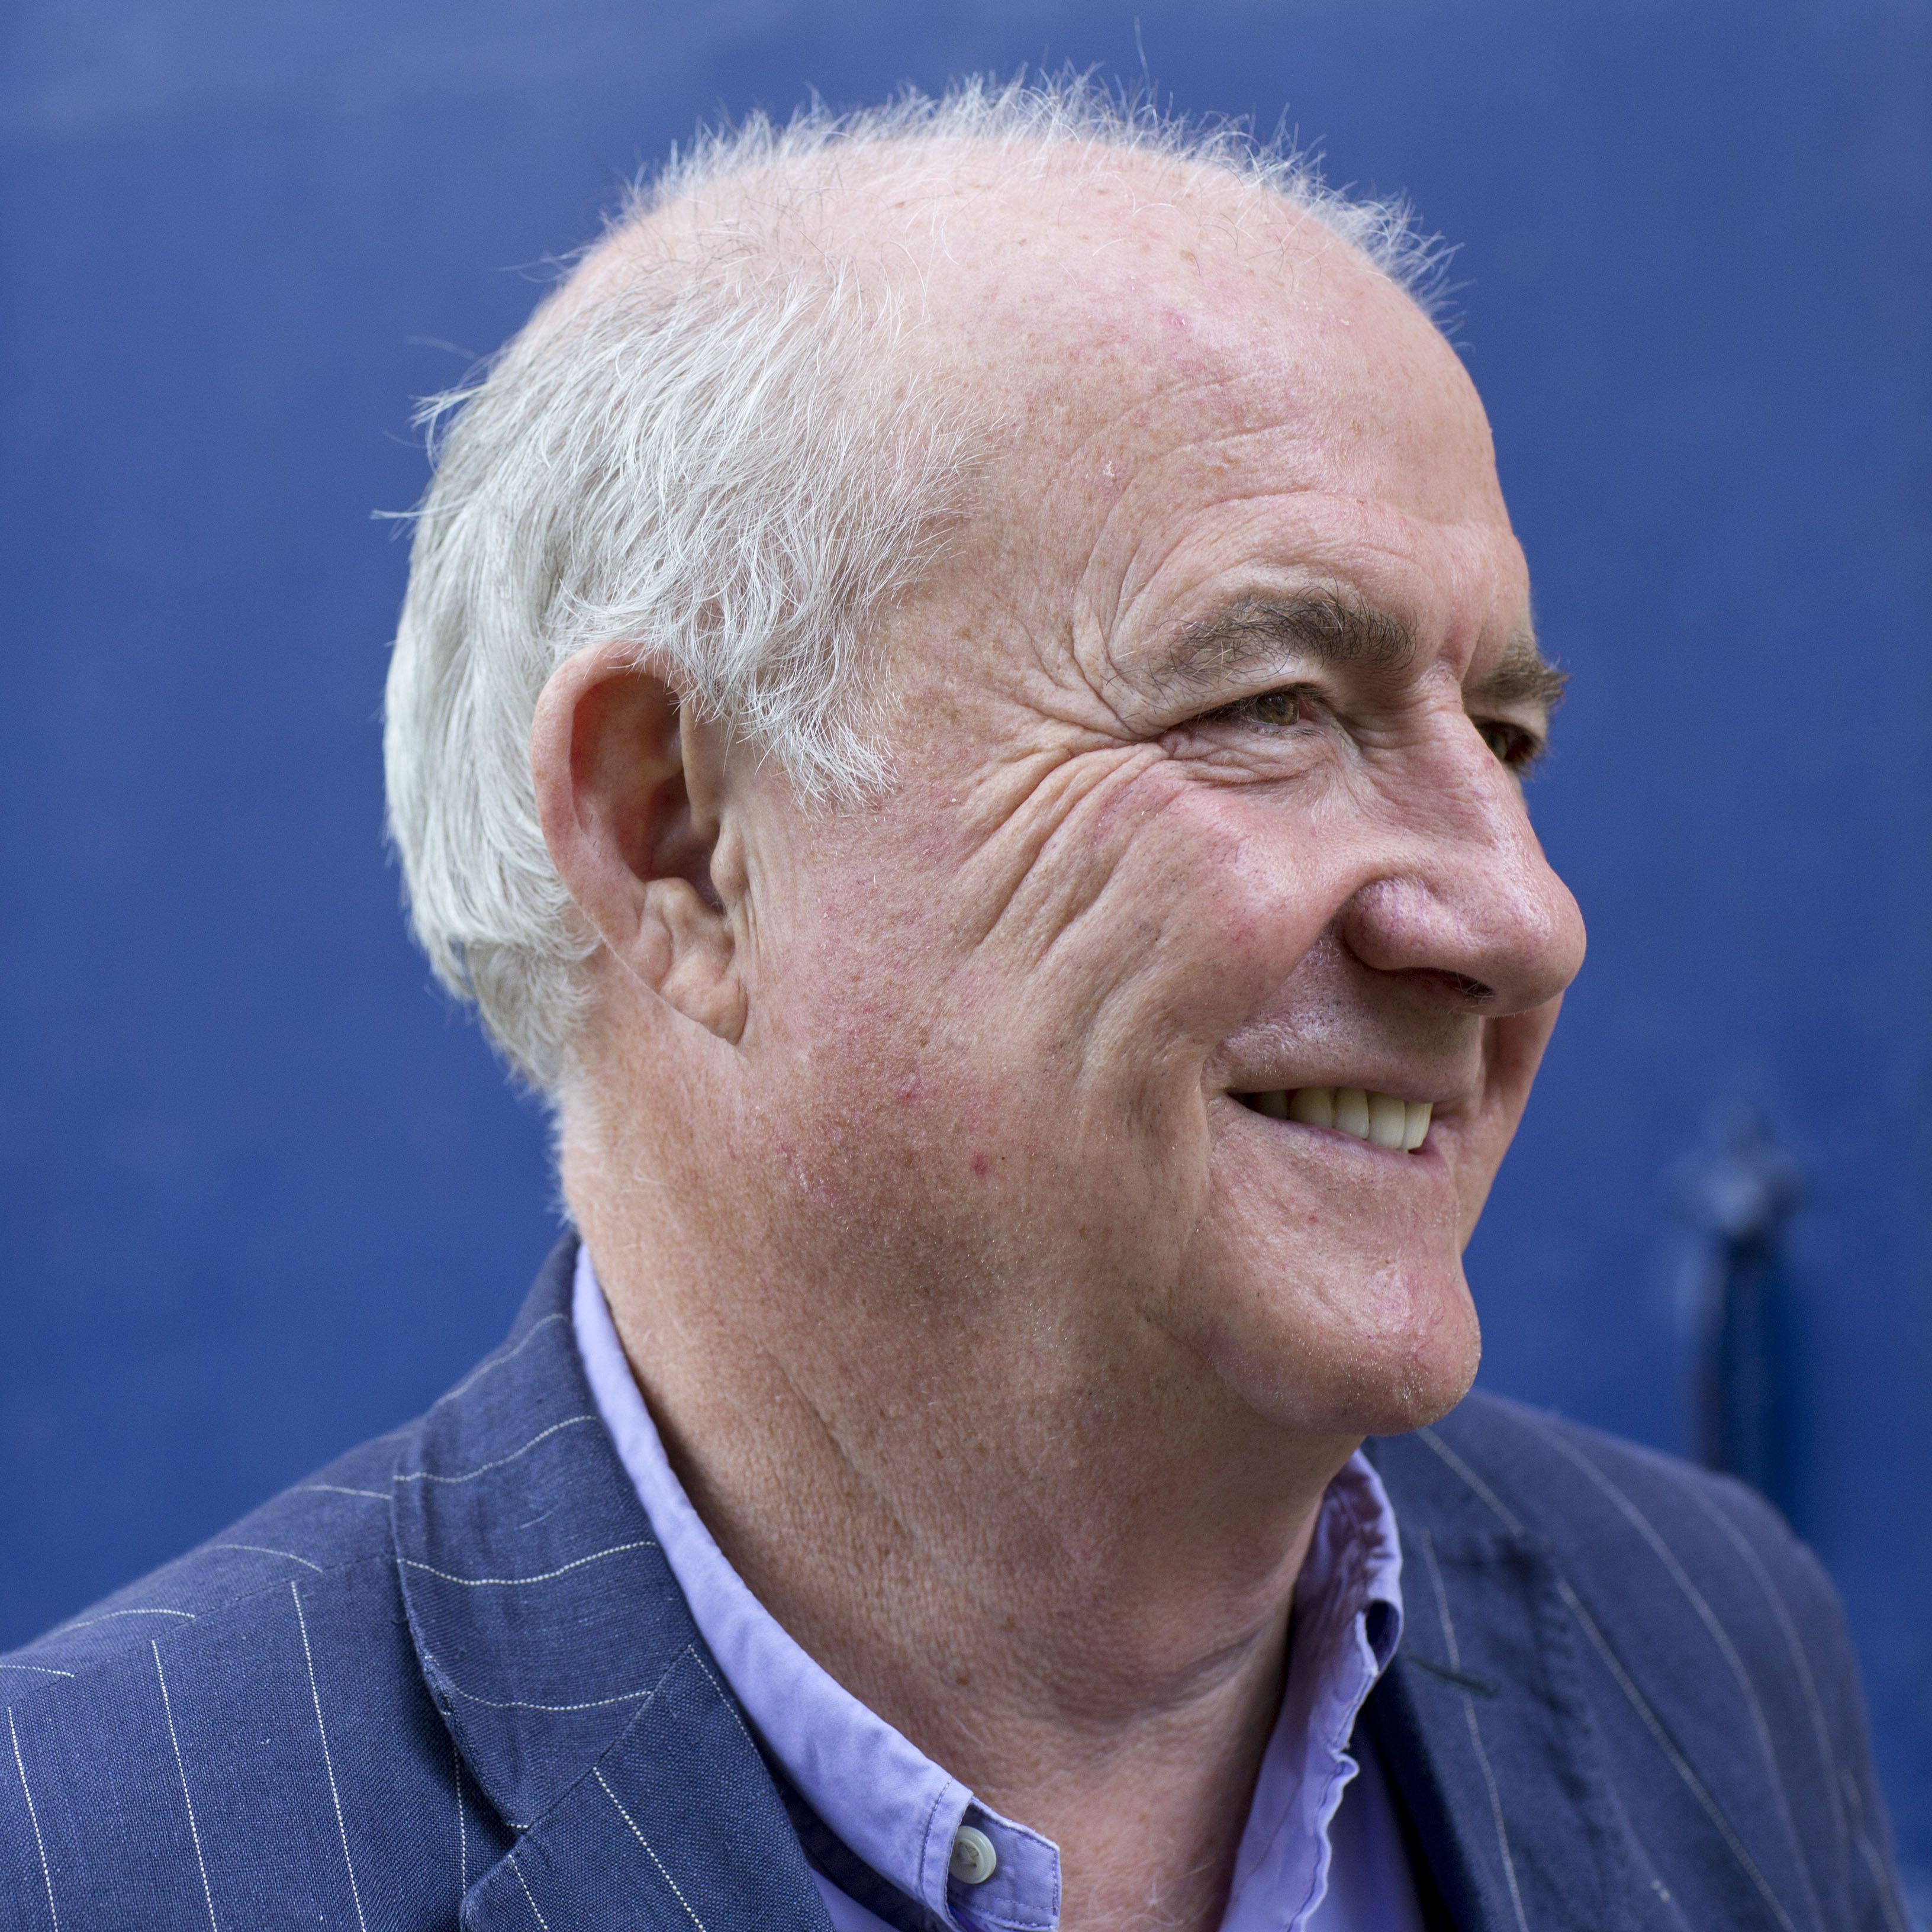 WOODSTOCK, ENGLAND - SEPTEMBER 18:  Chef, broadcaster and food writer Rick Stein poses at the Blenheim Palace Literary Festival on September 18, 2013 in Woodstock, England.  (Photo by David Levenson/Getty Images)